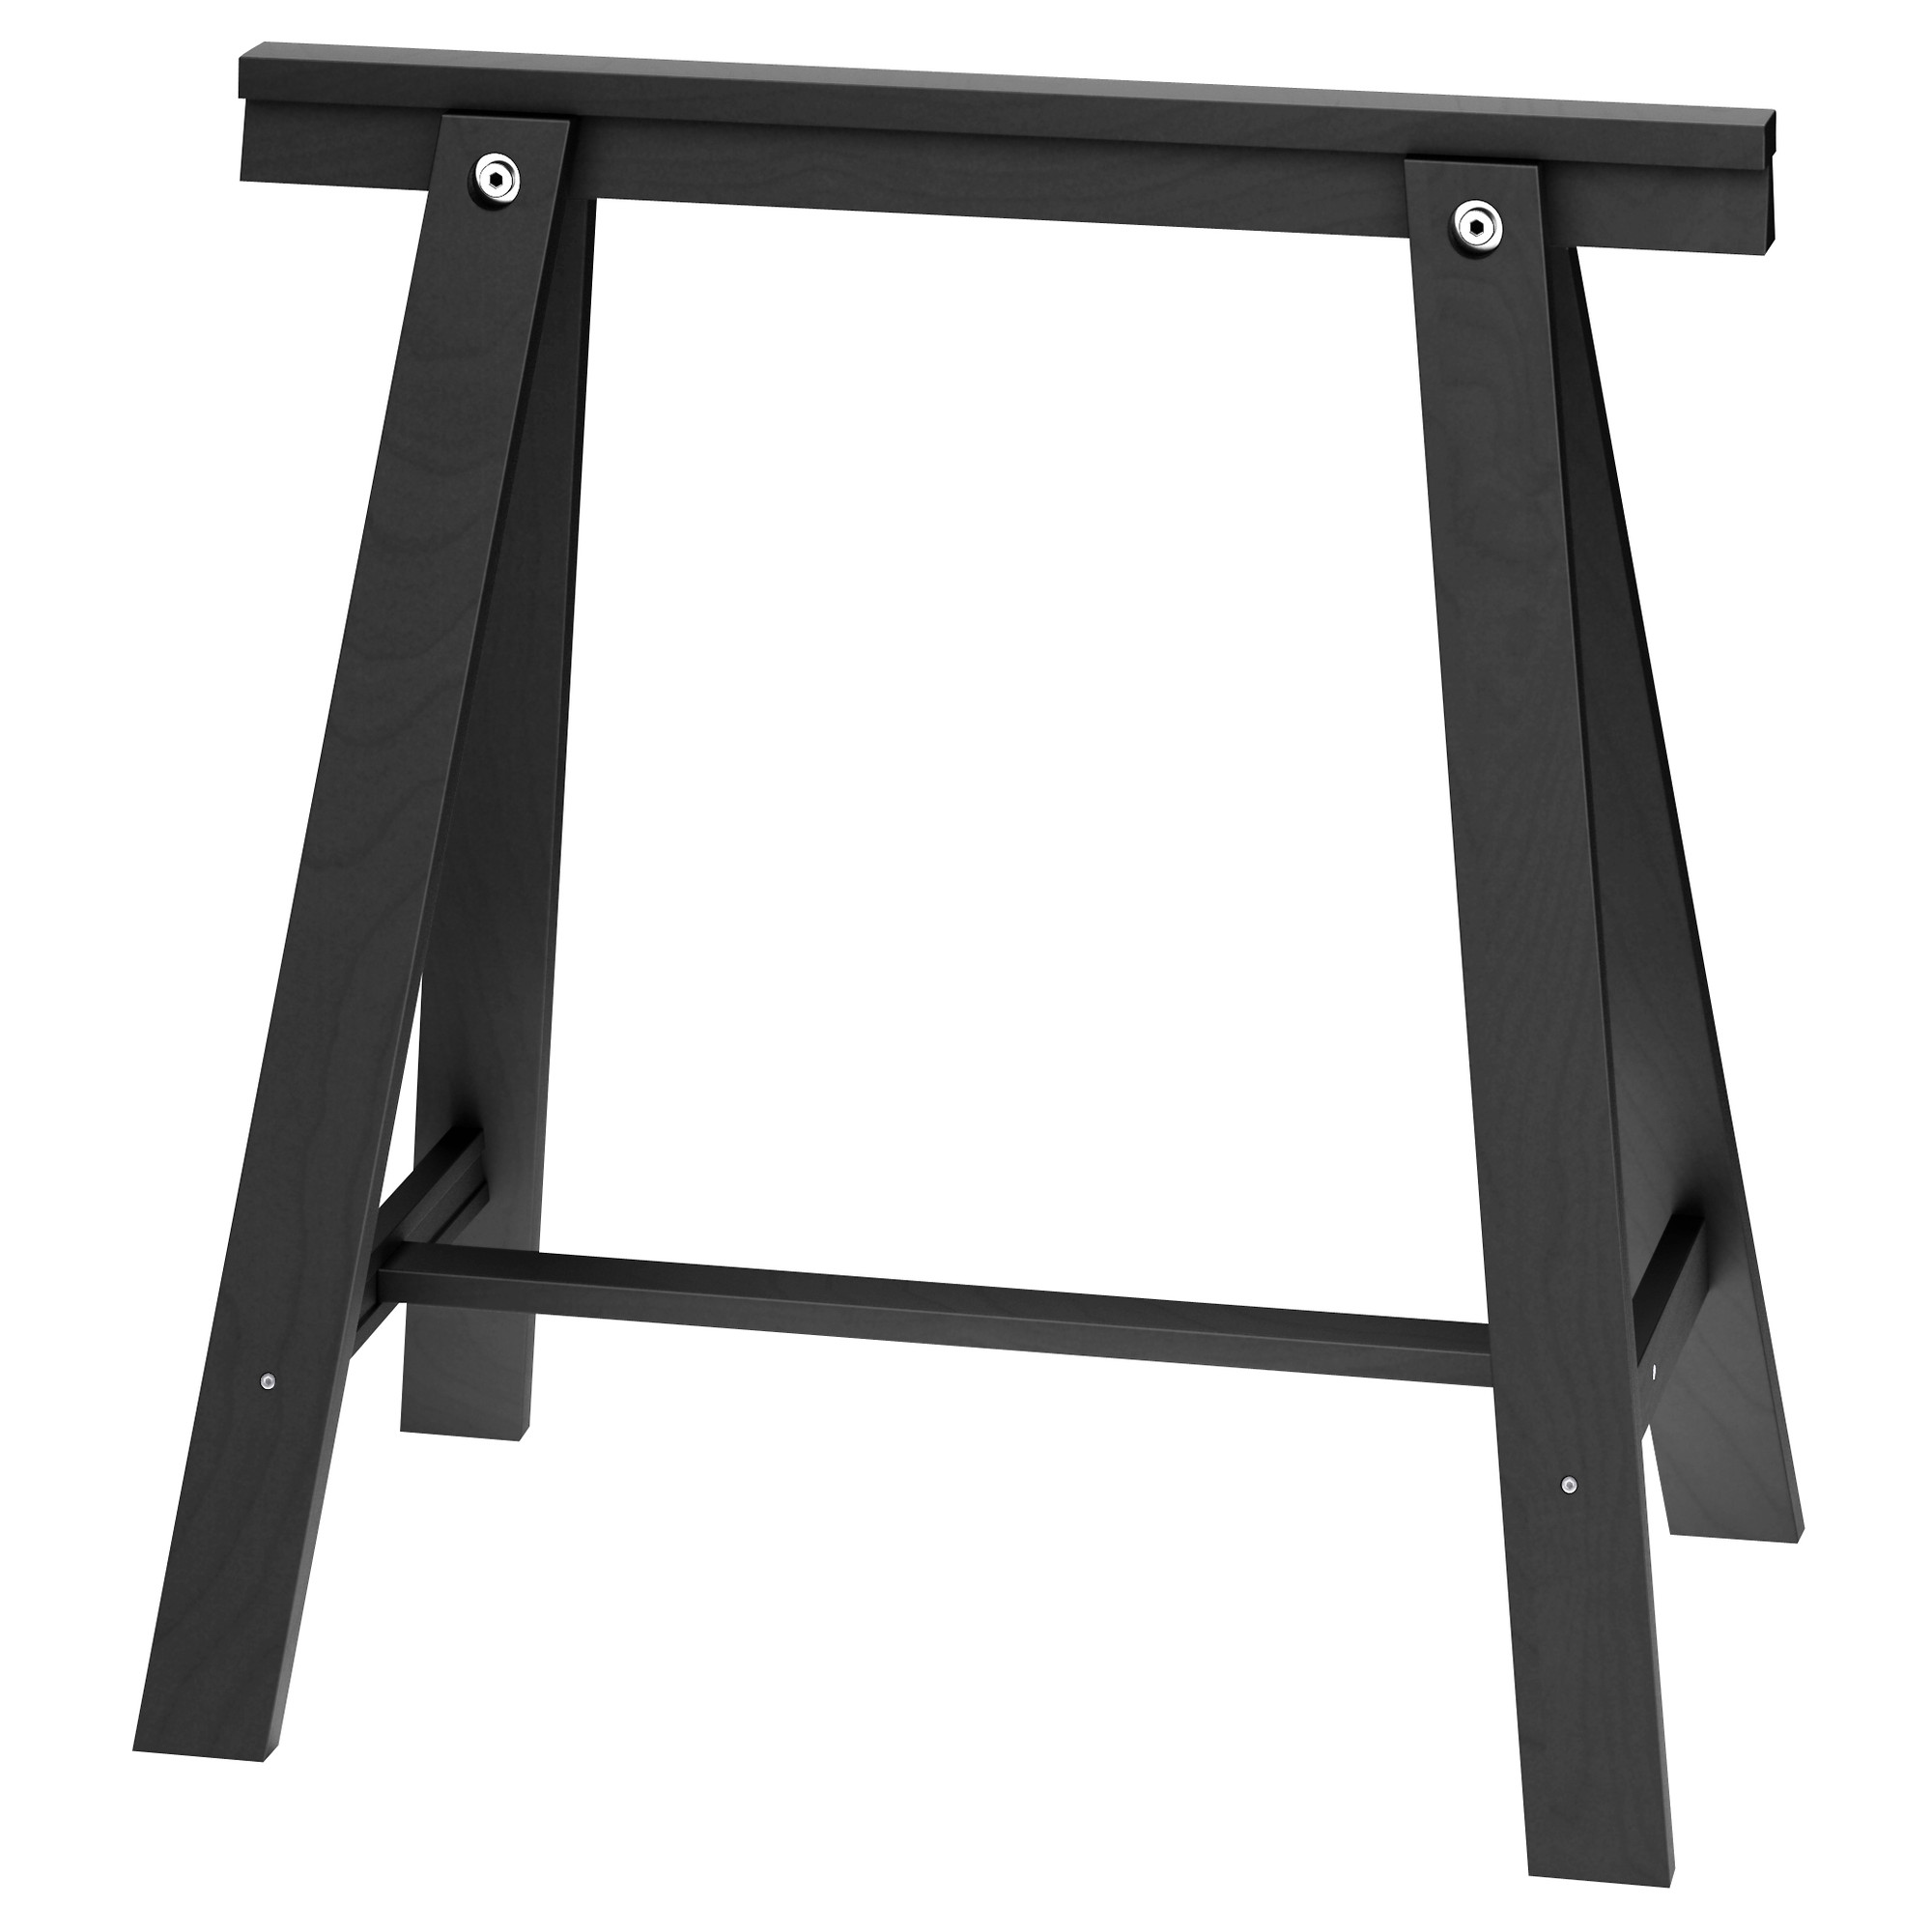 Work Bench Legs for Best Your Workspace Furniture Design: Tennsco Workbench | Work Bench Legs | Workbench Legs Kit